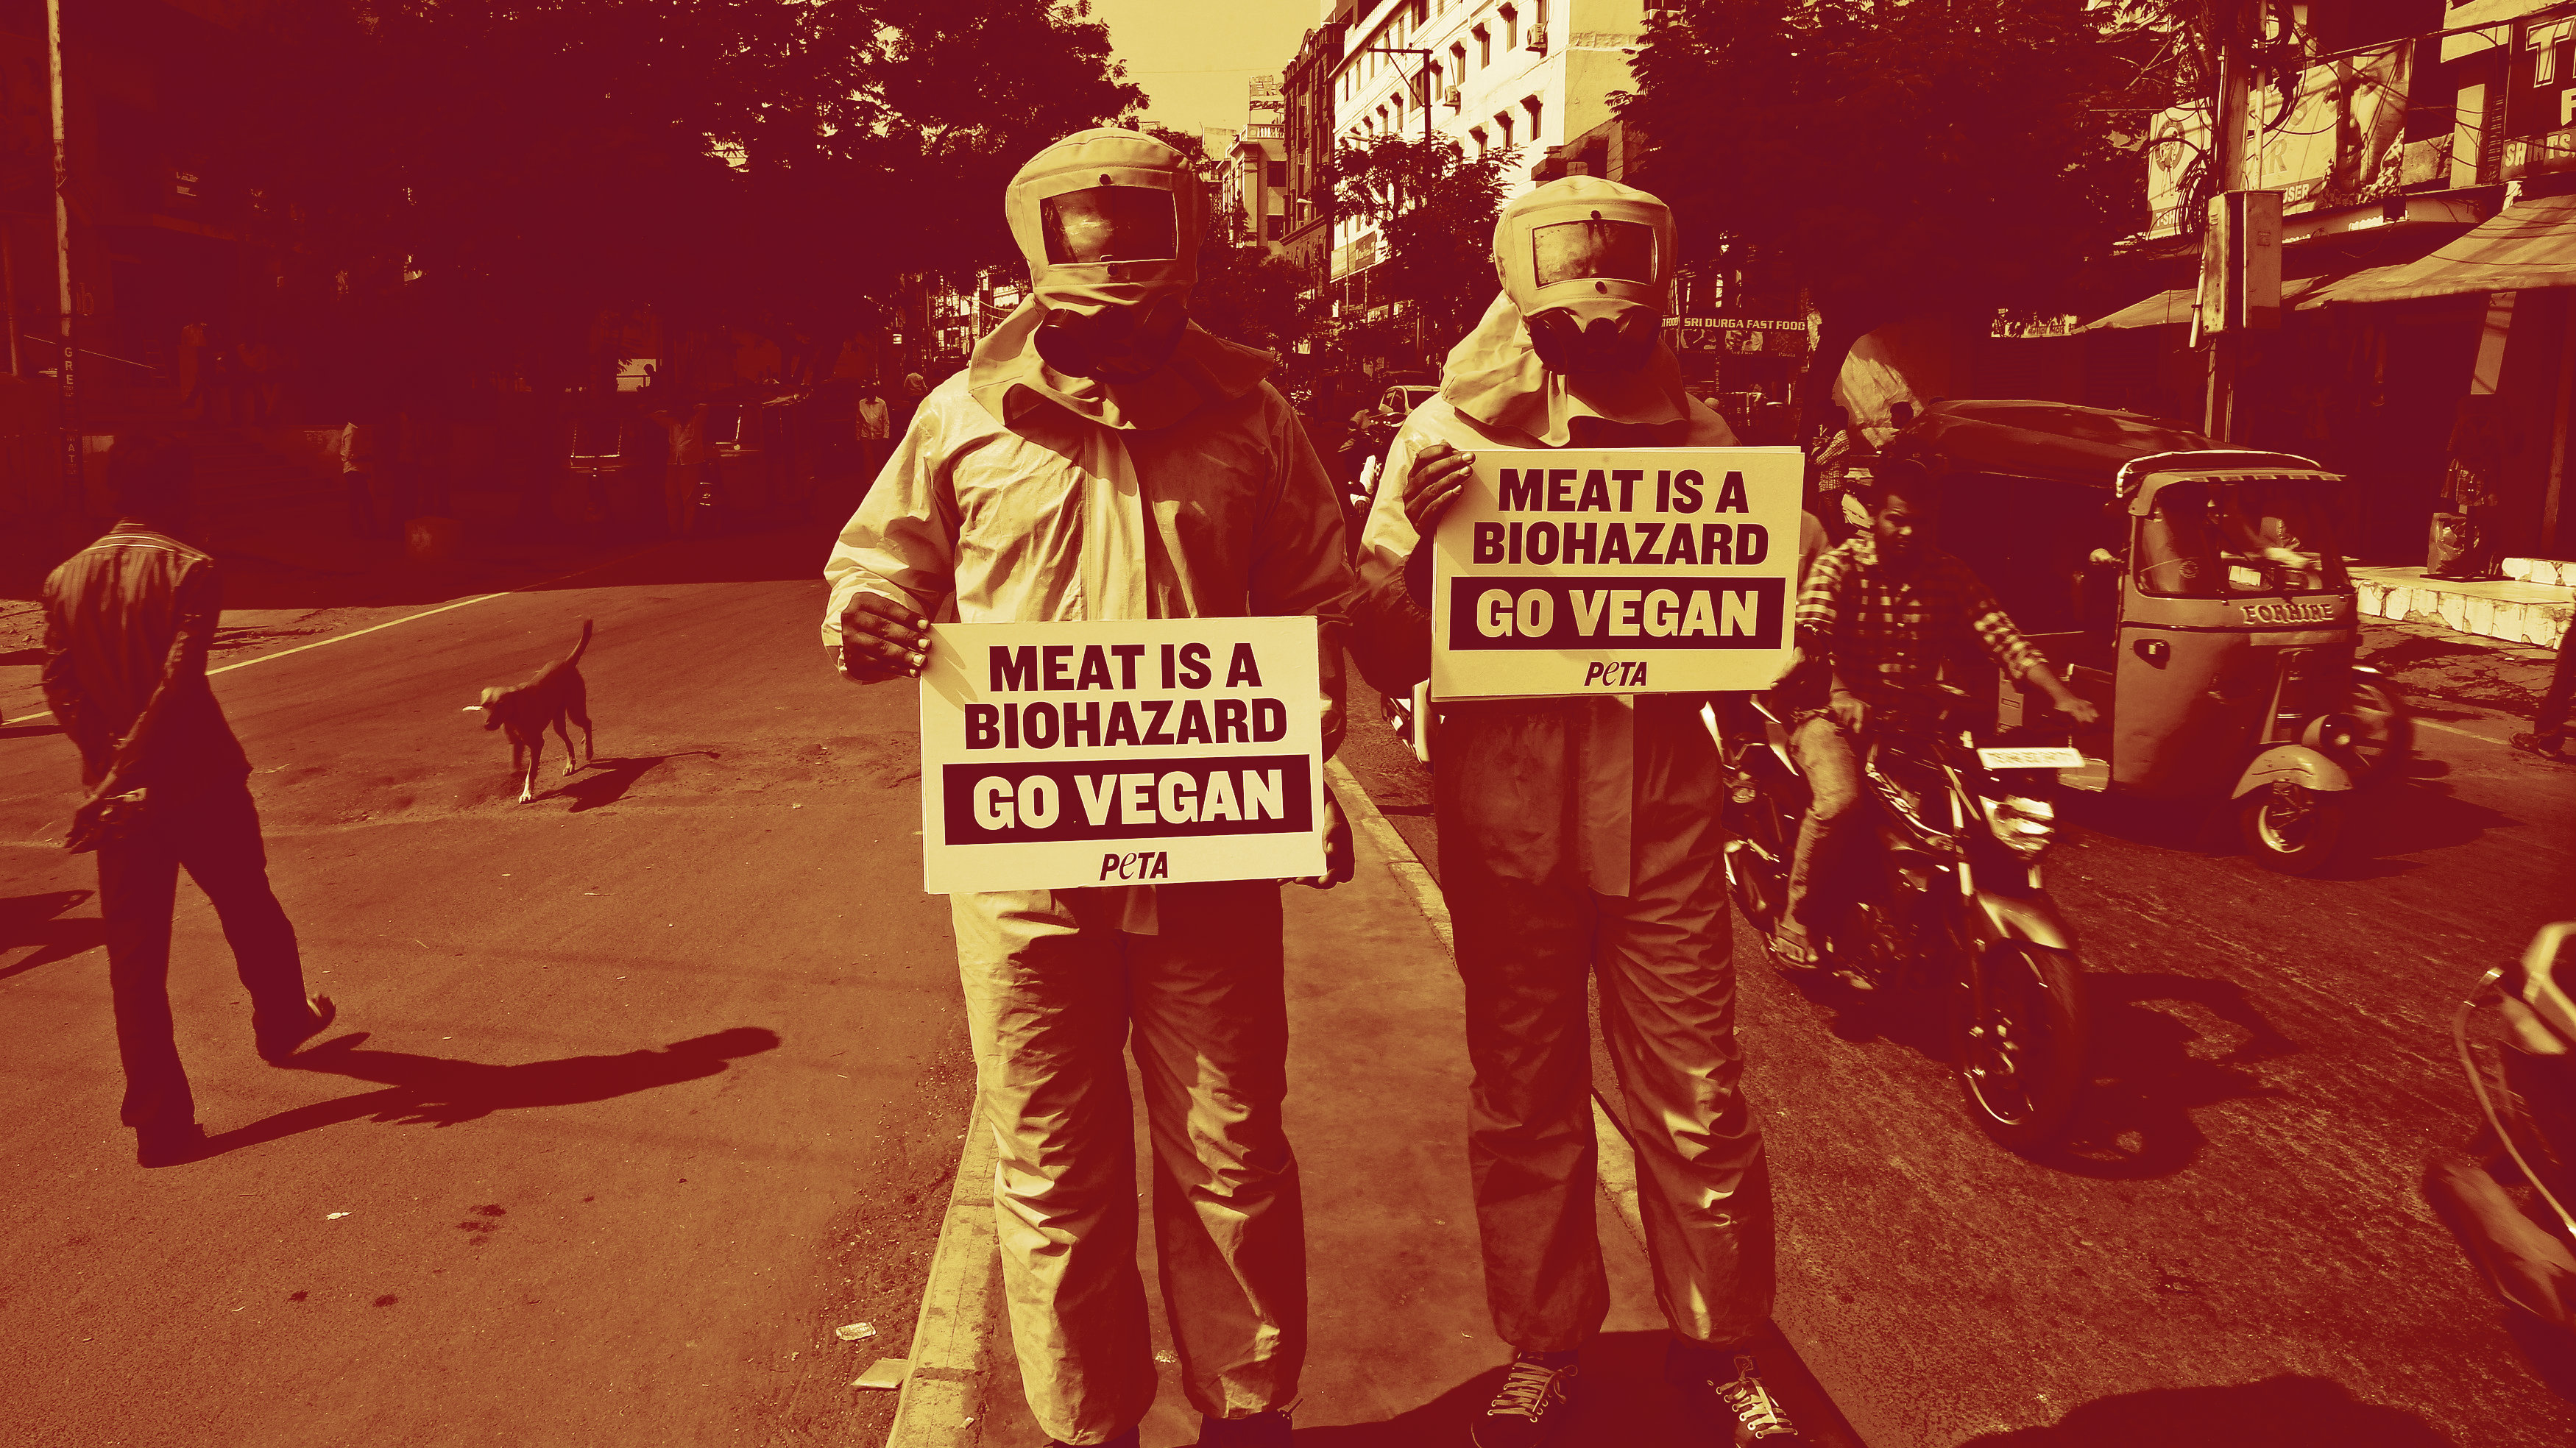 Indian activists for People for the Ethical Treatment of Animals (PETA) dressed in hazmat suits hold placards promoting veganism during a protest in Hyderabad.